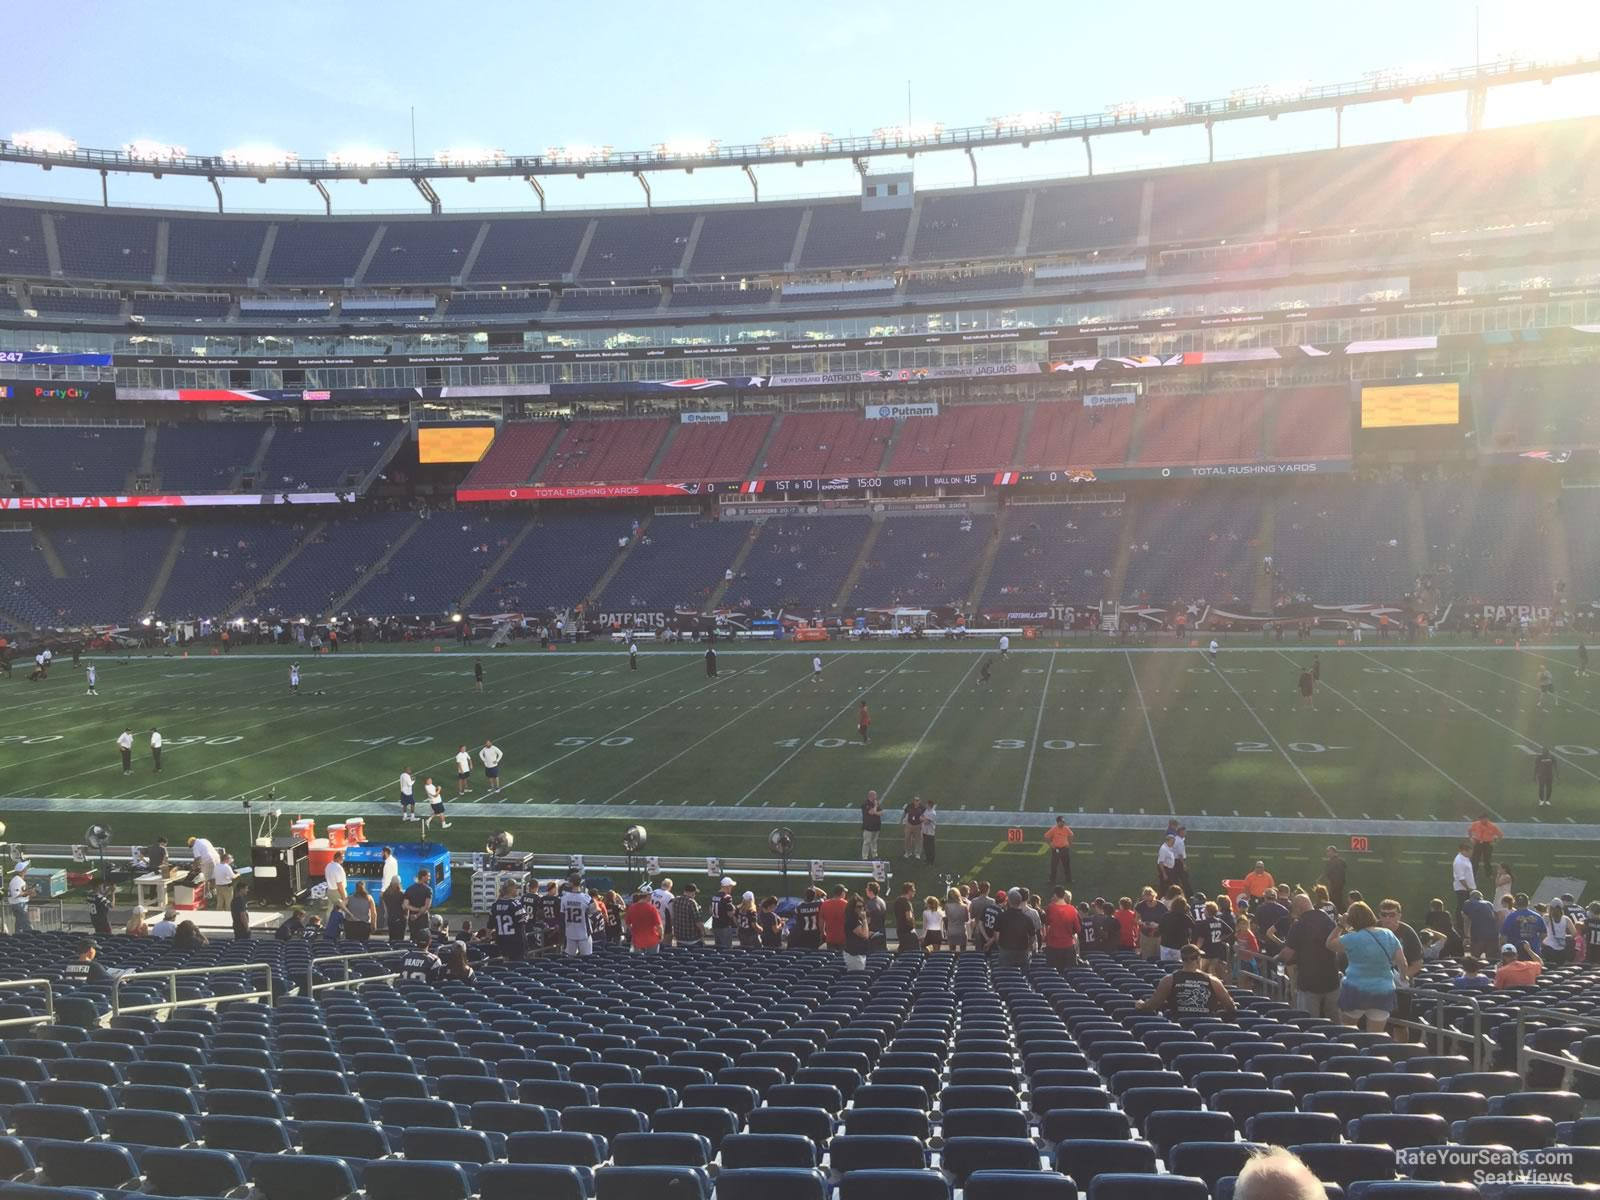 New England Patriots Seat View for Gillette Stadium Section 108, Row 29